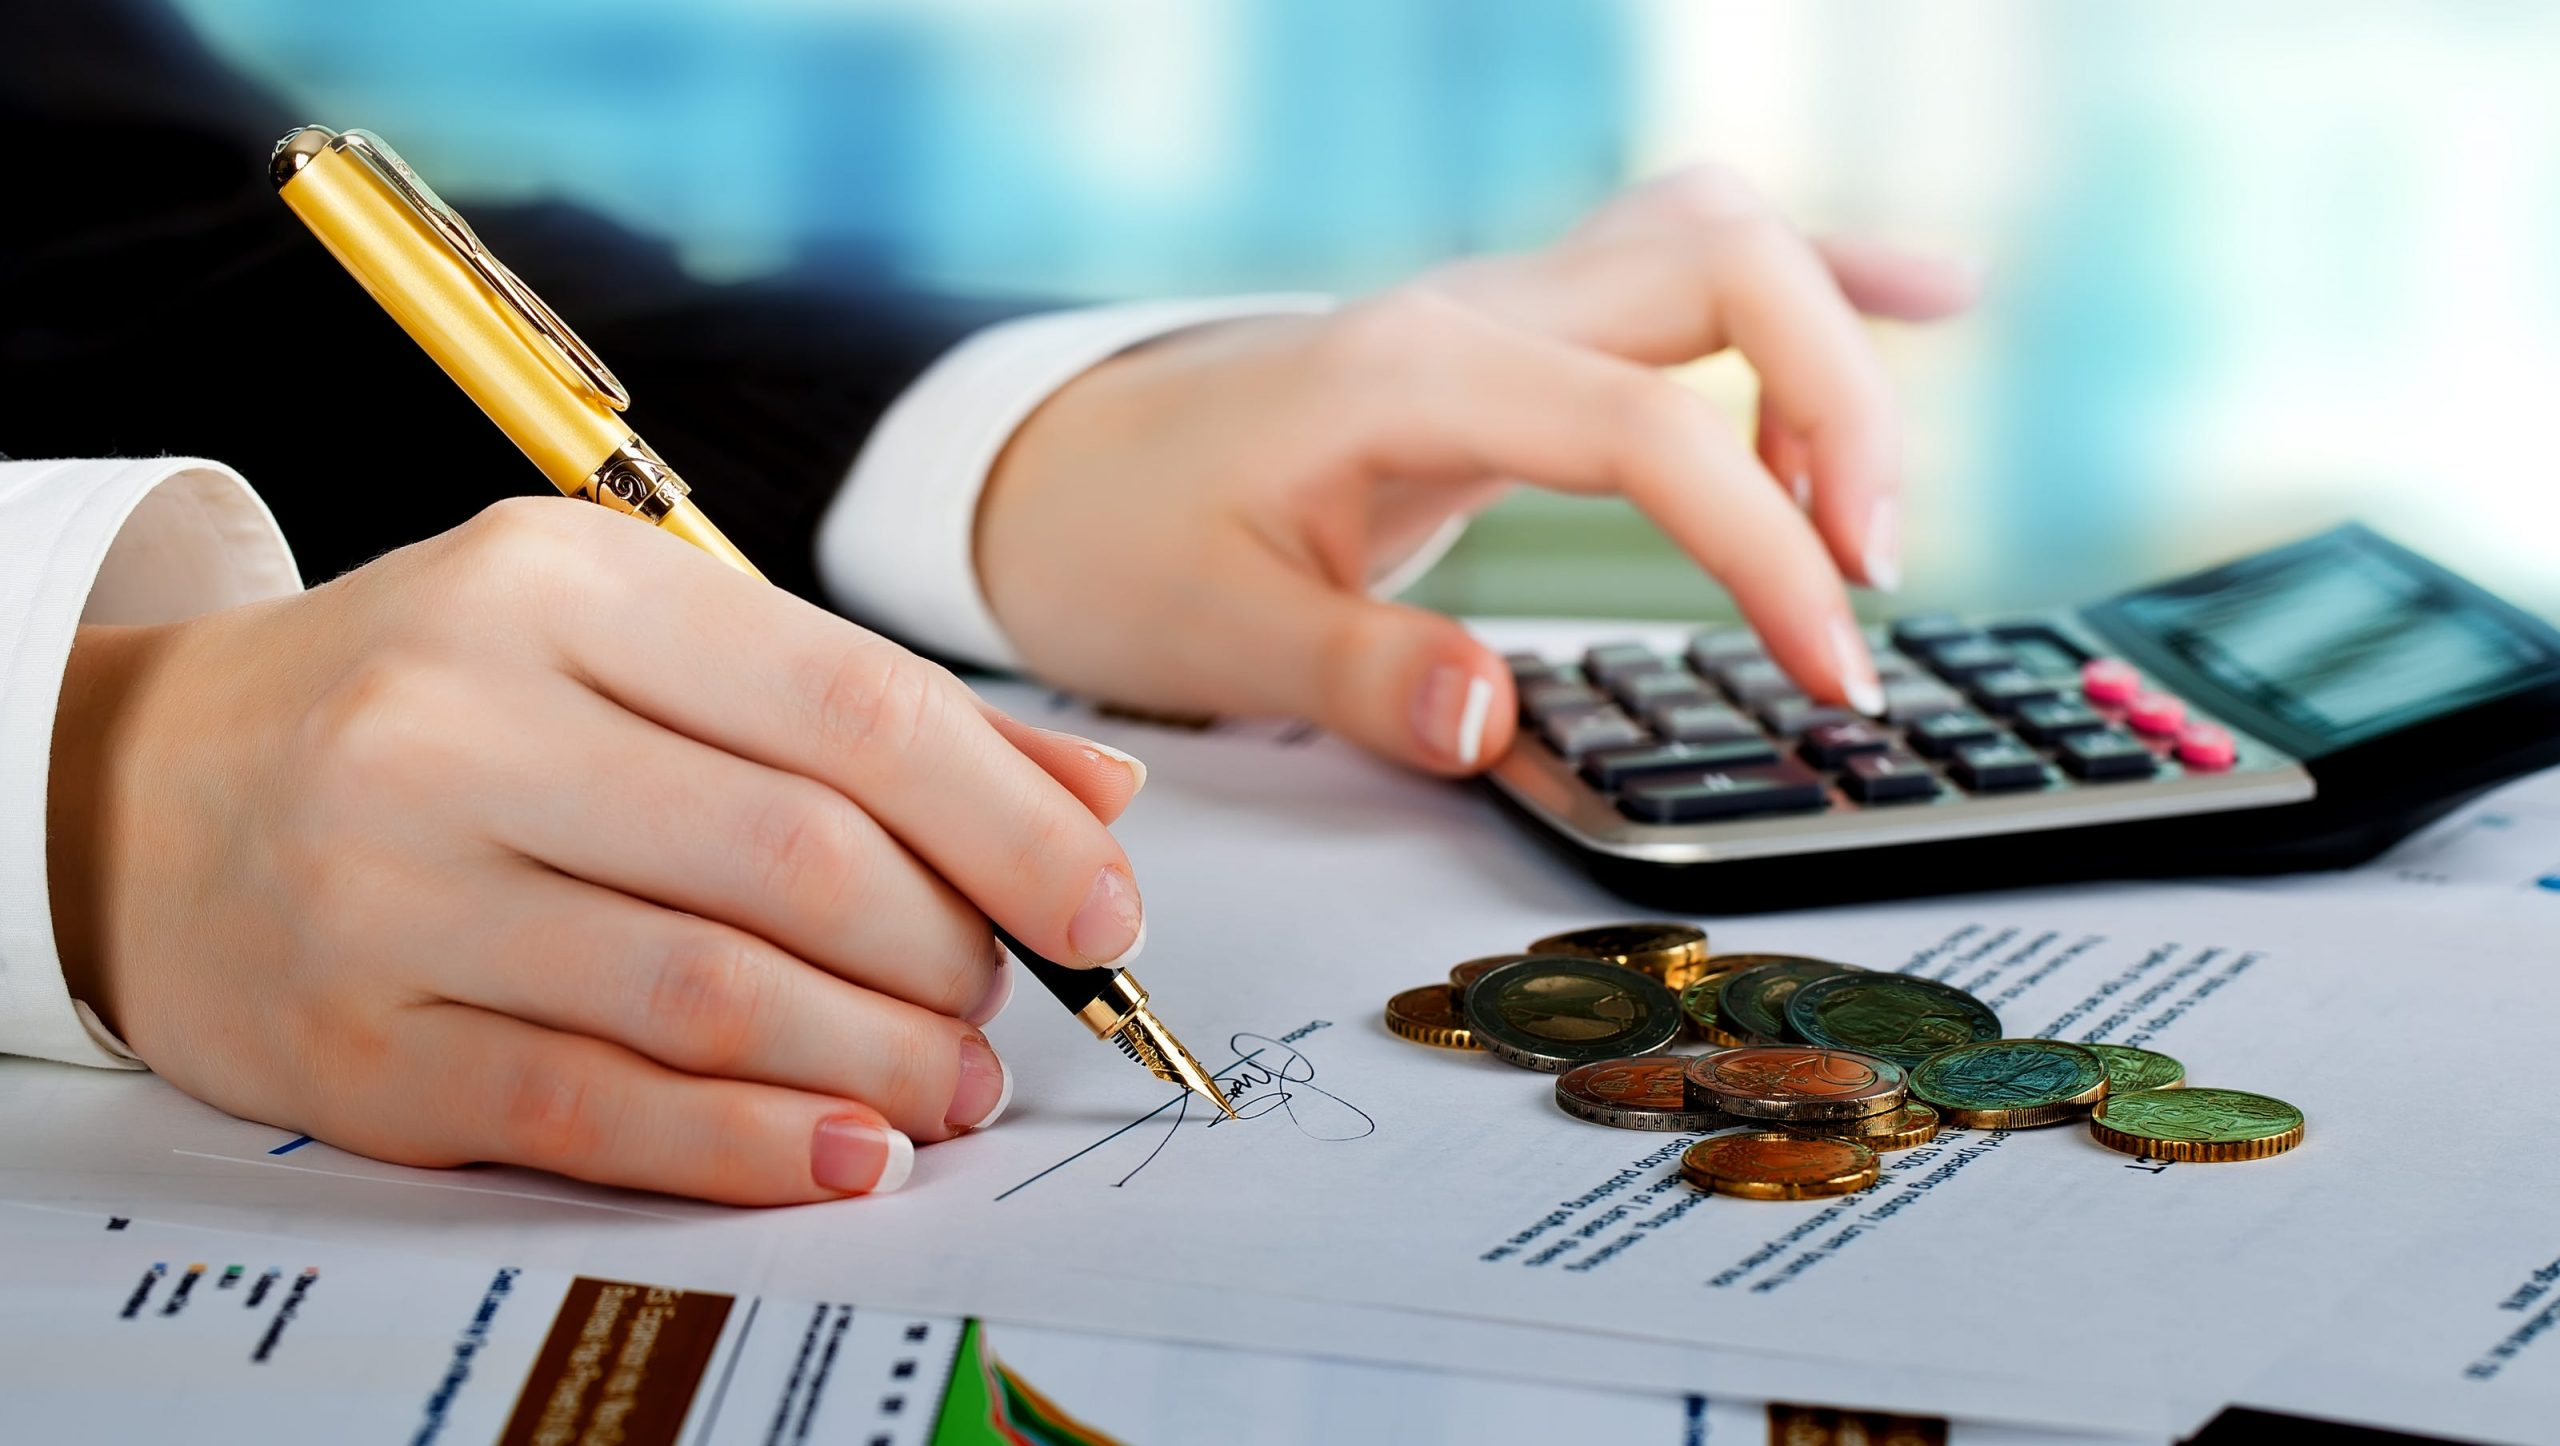 Take a Look at All the Ways to Apply for Business Funding